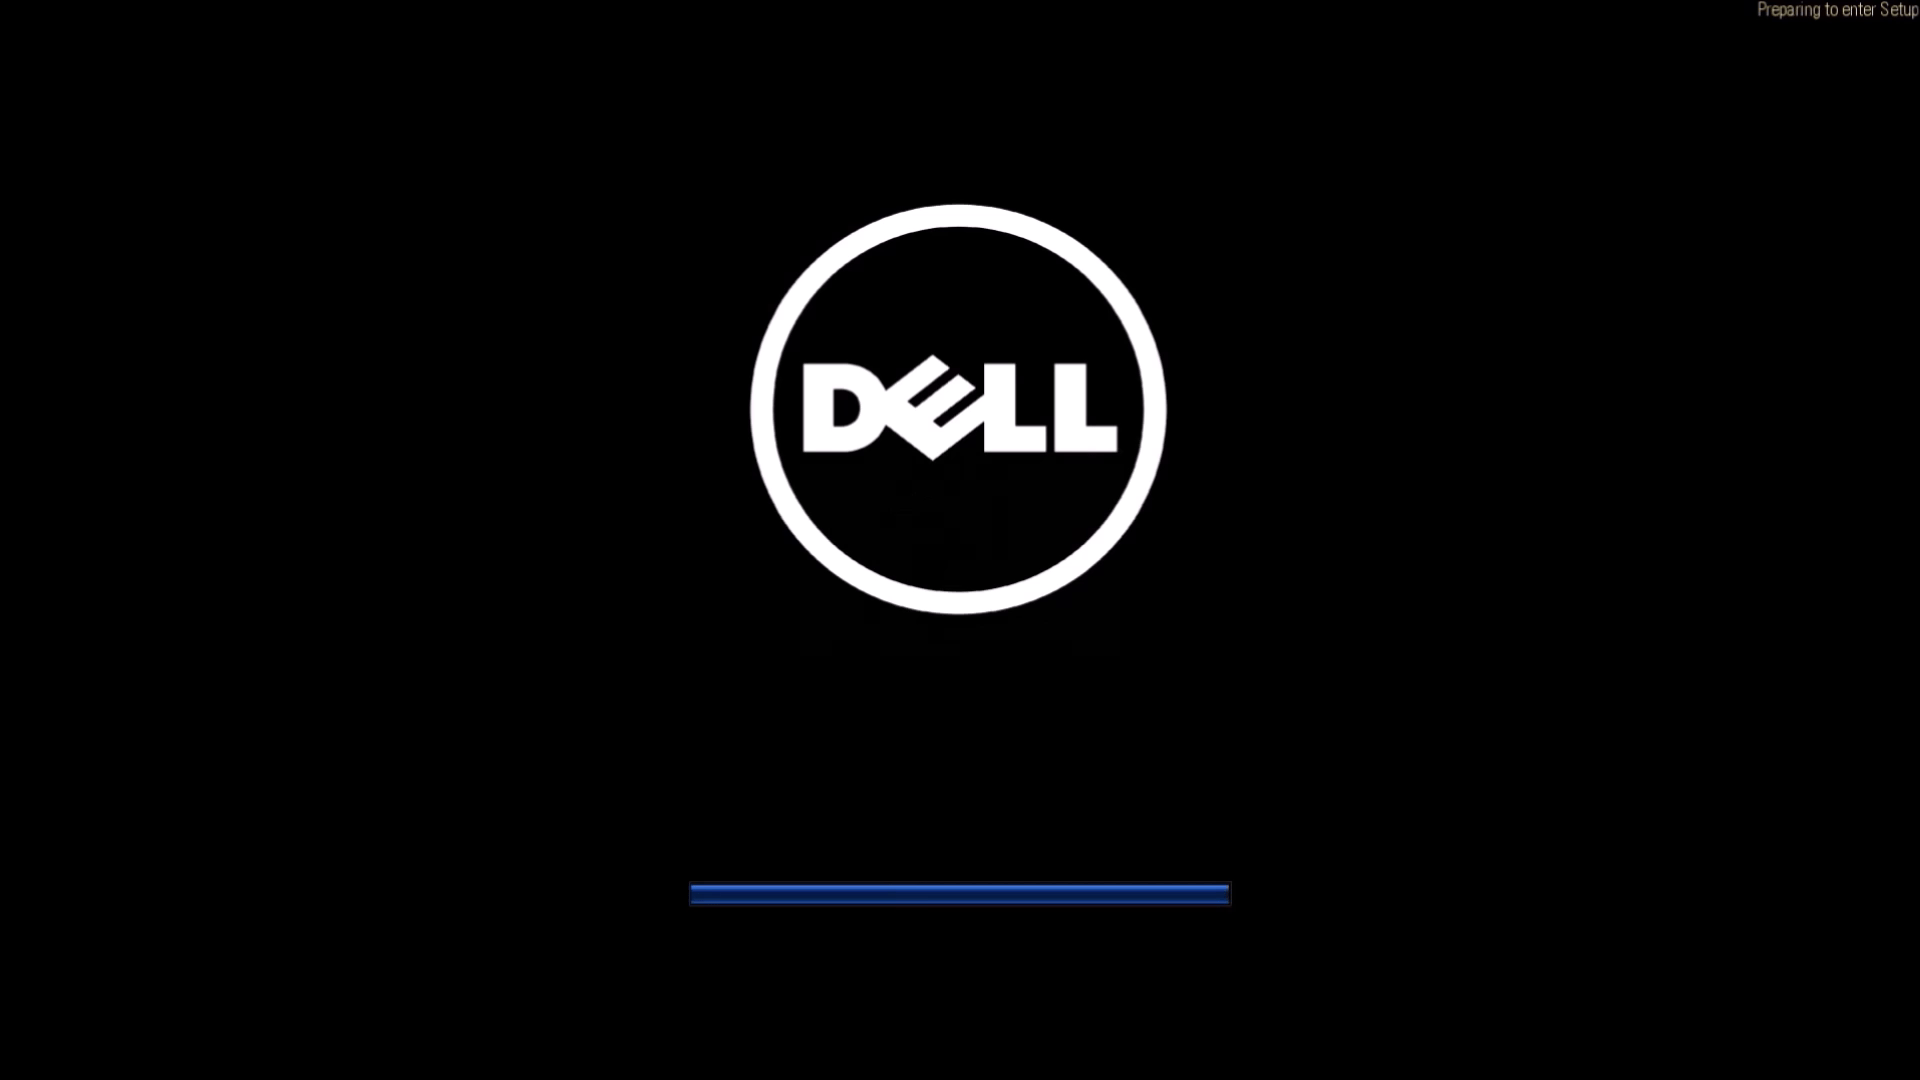 install camera driver windows 10 dell